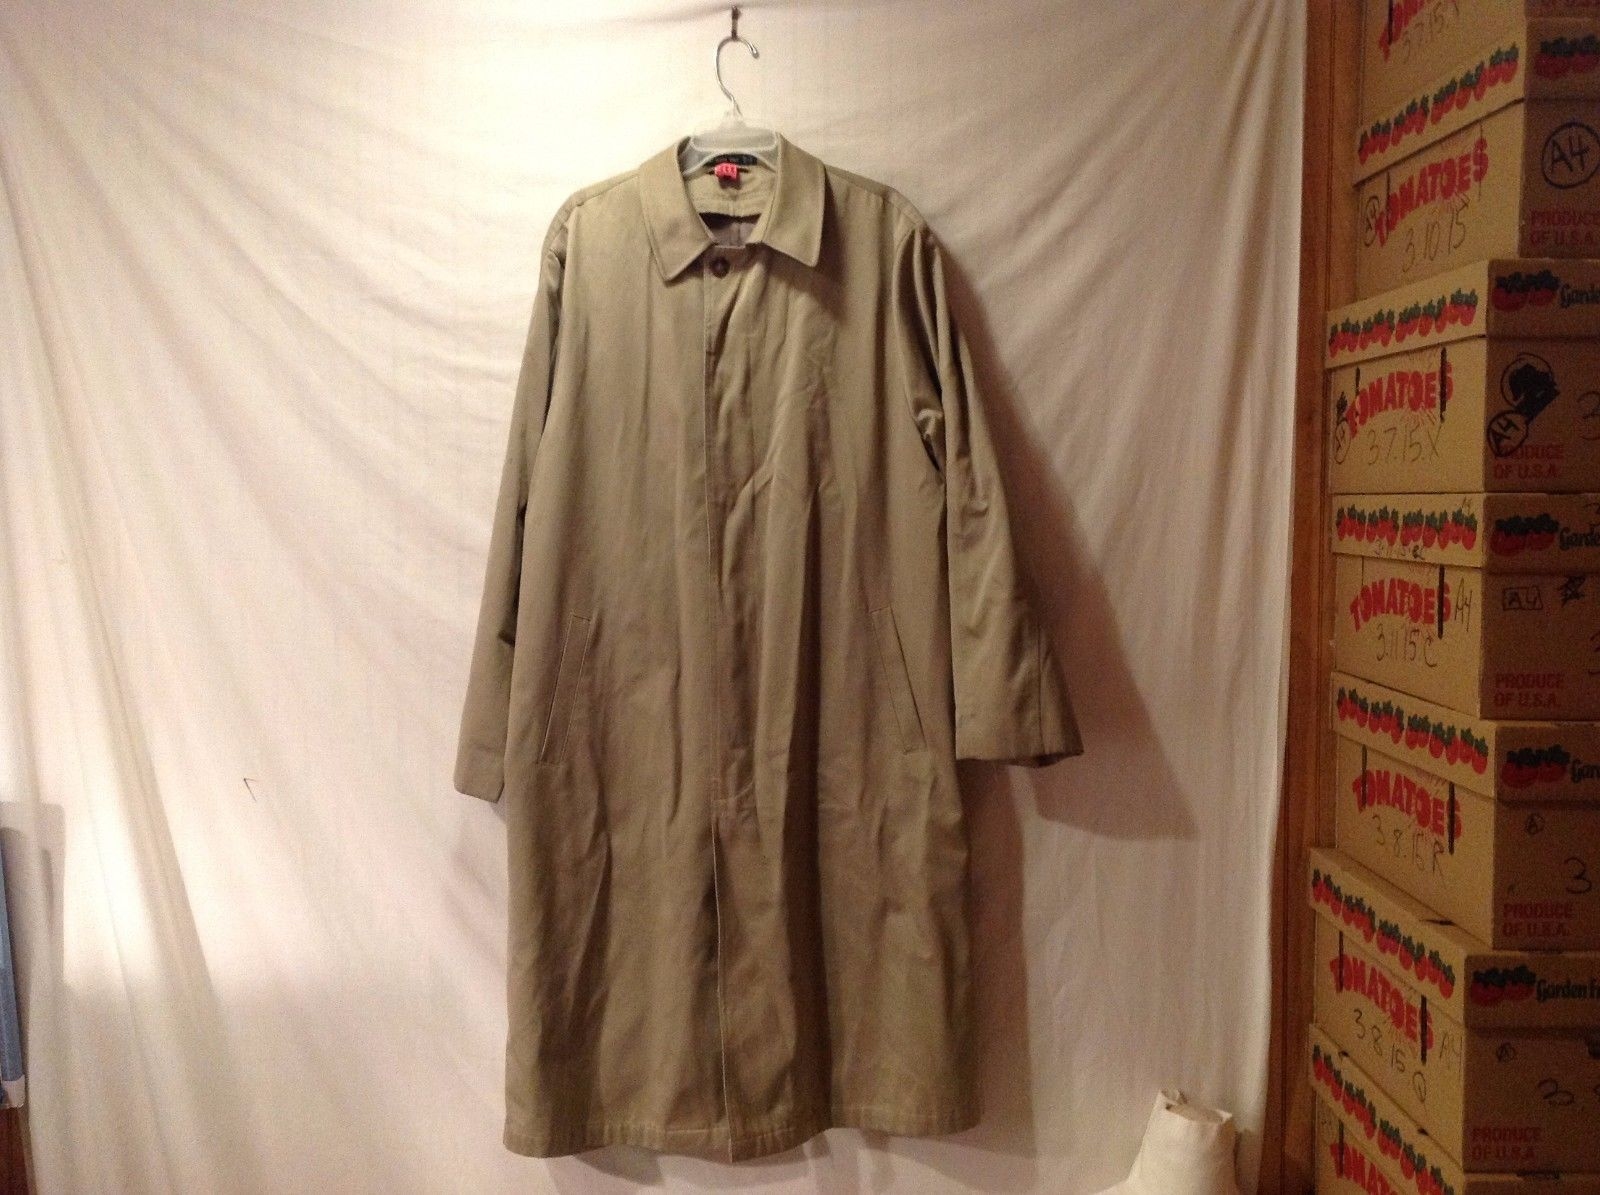 Excellent Condition Mens Ralph Lauren Tan Trench coat raincoat dress coat